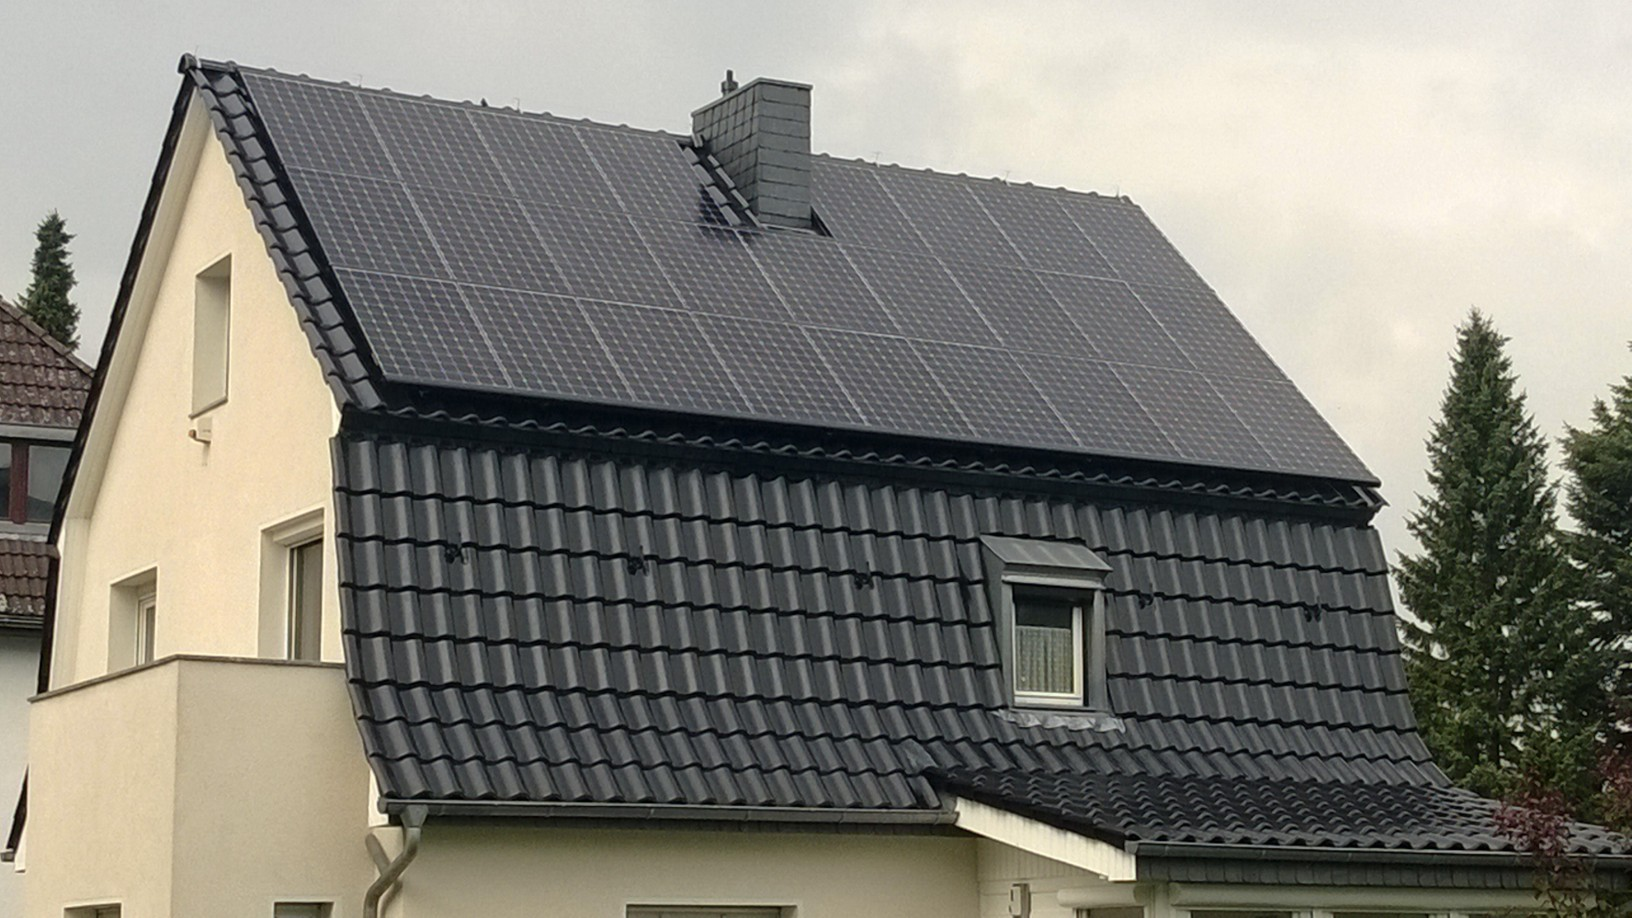 8,97 kWp Sunpower (X21 345W Module) mit Solaredge Wechselrichter in Berlin